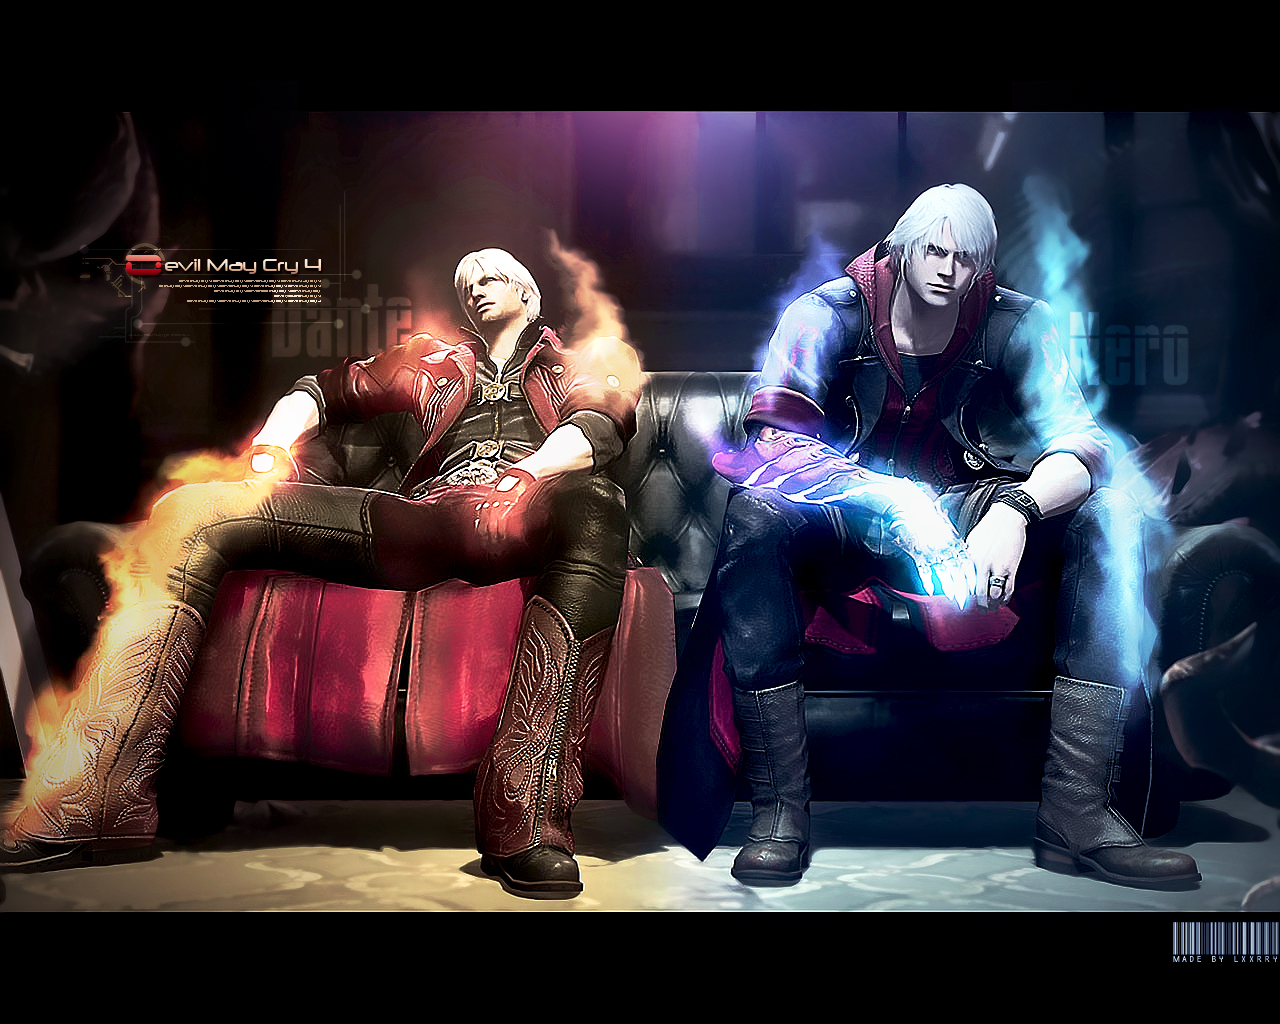 devil may cry 4 wallpaper 01squishless on deviantart